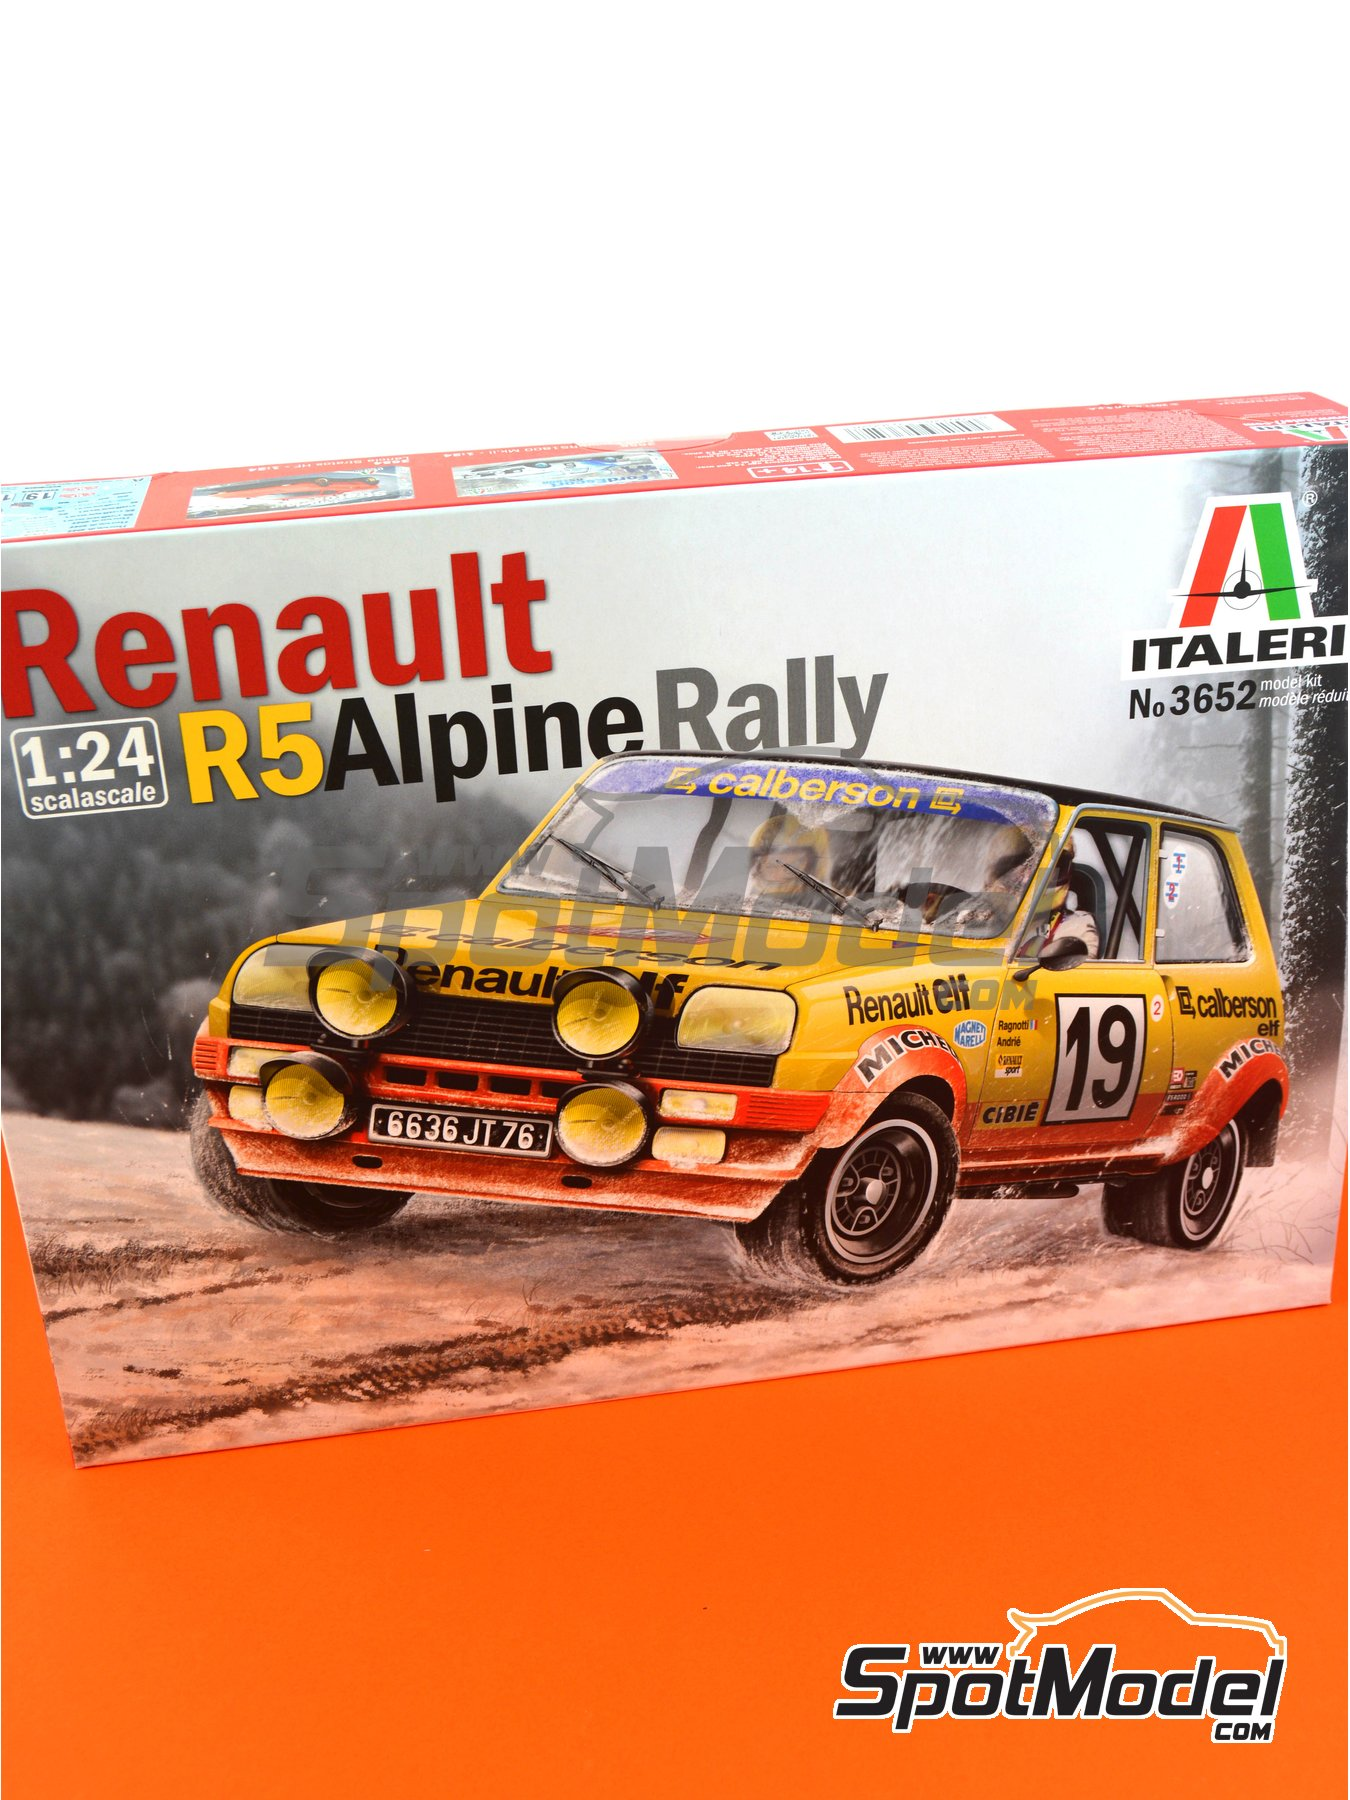 Renault R5 Alpine Rally Calberson - Montecarlo Rally 1978 | Model car kit in 1/24 scale manufactured by Italeri (ref. 3652) image